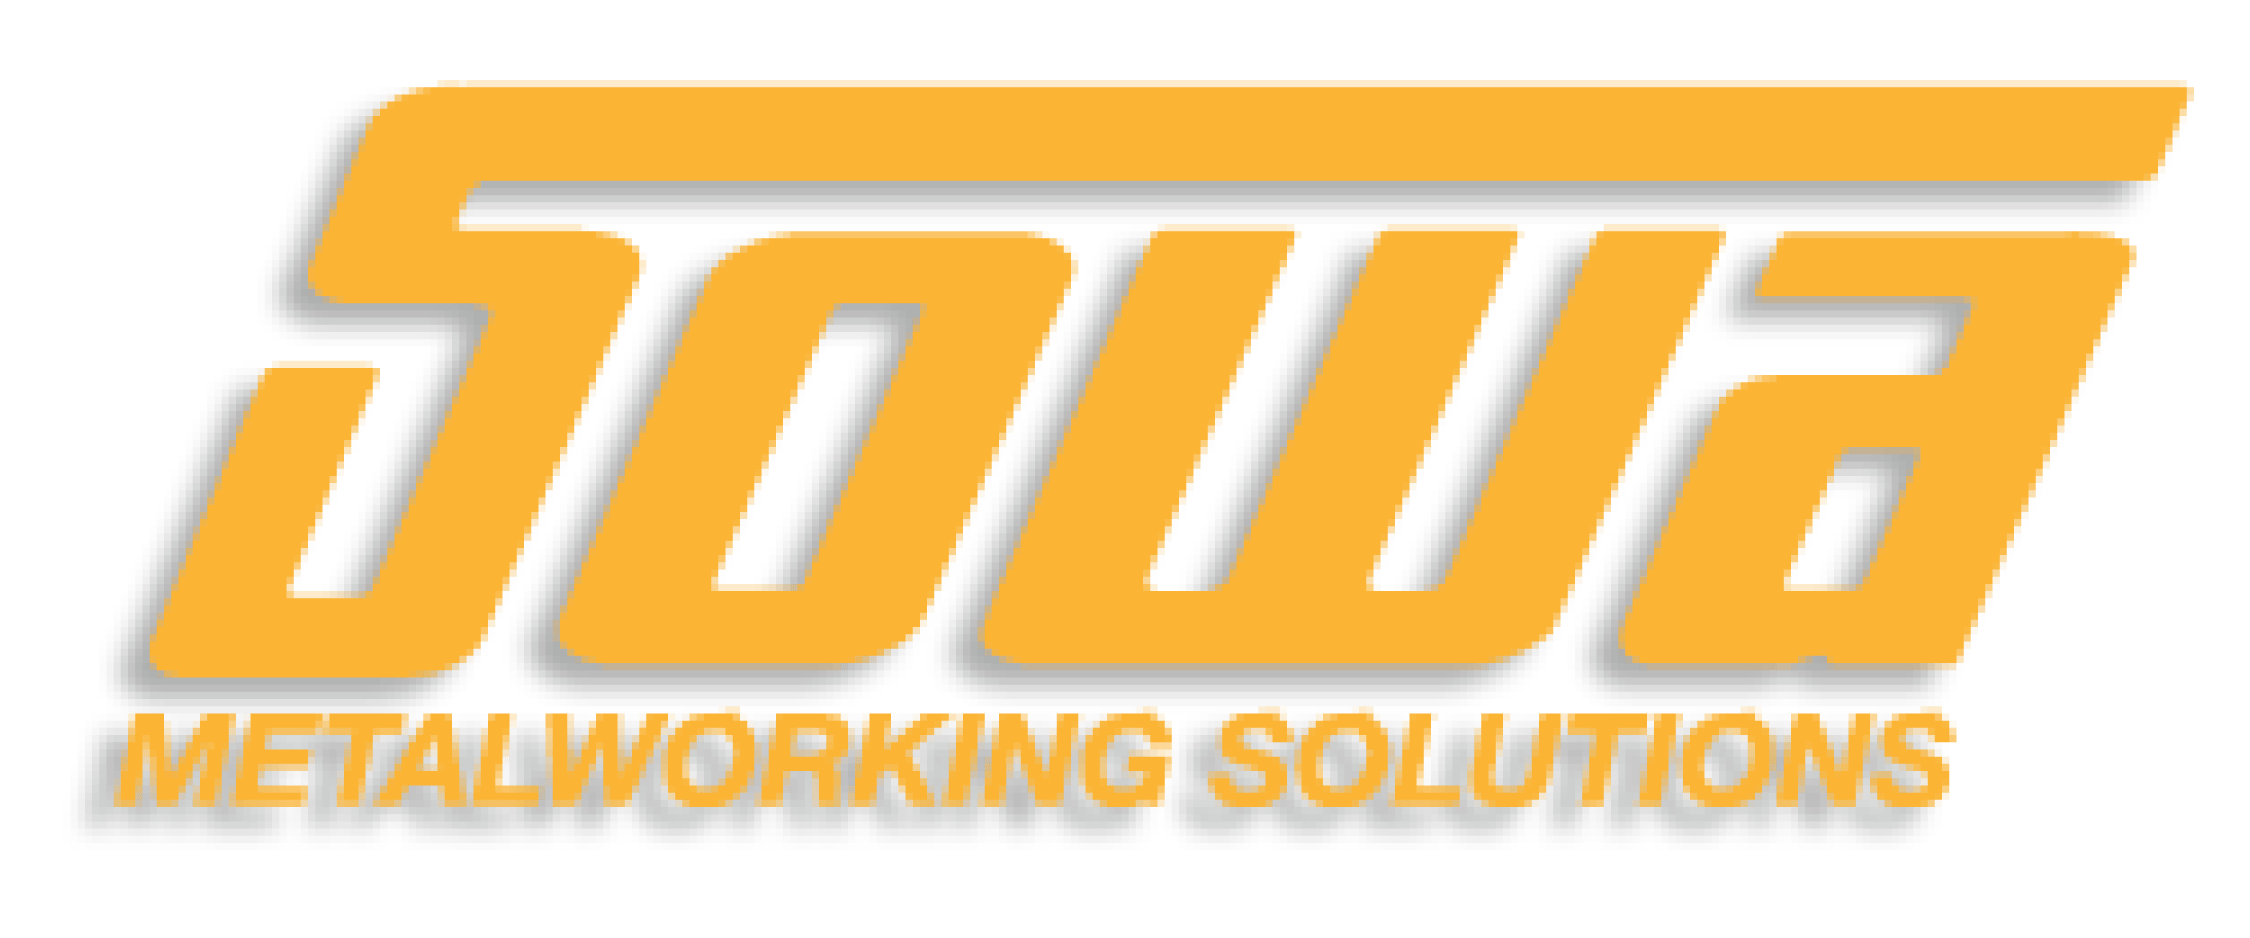 Sowa Metalworking Solutions logo